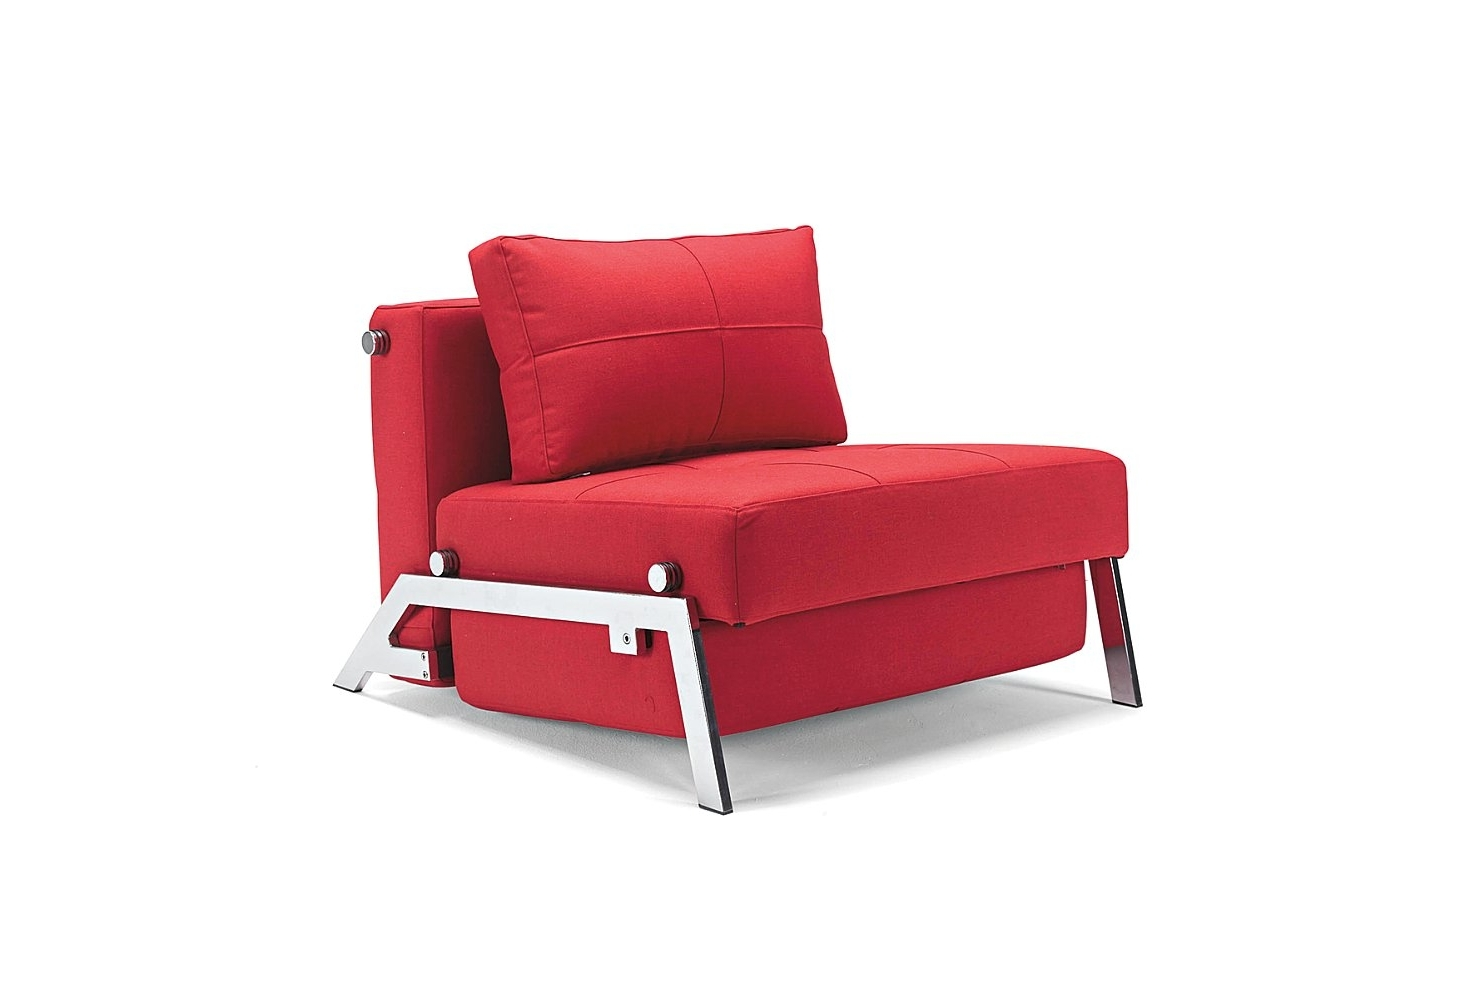 Newest Single Sofa Bed Moblerfurniture Red Color – Lentine Marine (View 6 of 20)